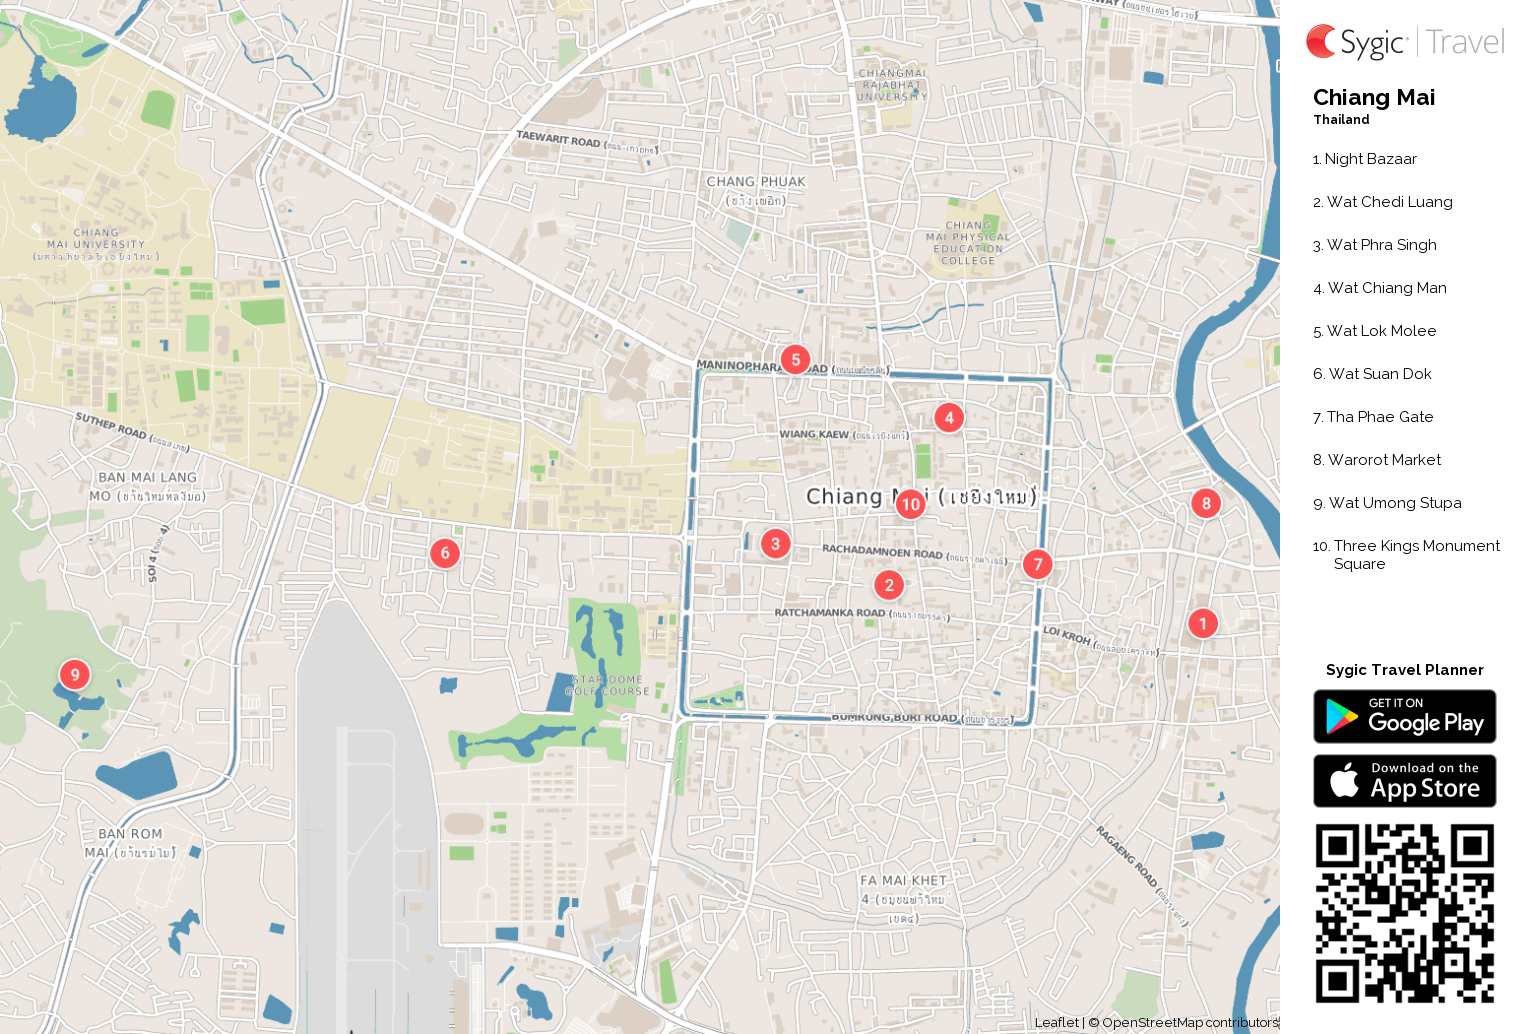 Chiang Mai Printable Tourist Map | Sygic Travel